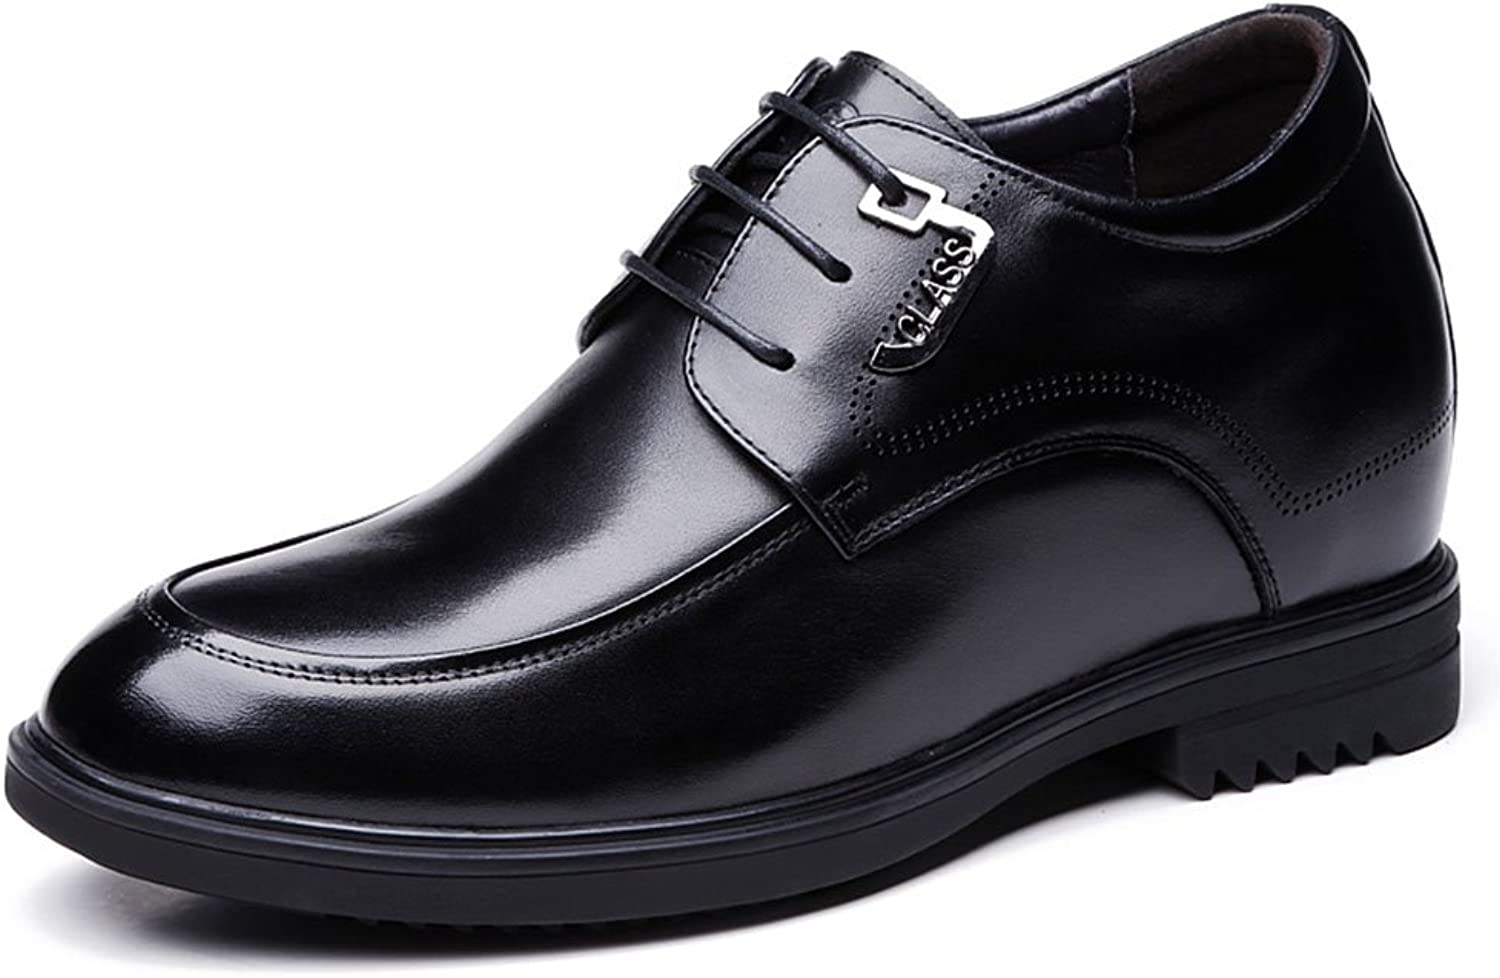 SNQ Black Taller-Calf Leather Wedding Party Business Oxfords shoes for Men